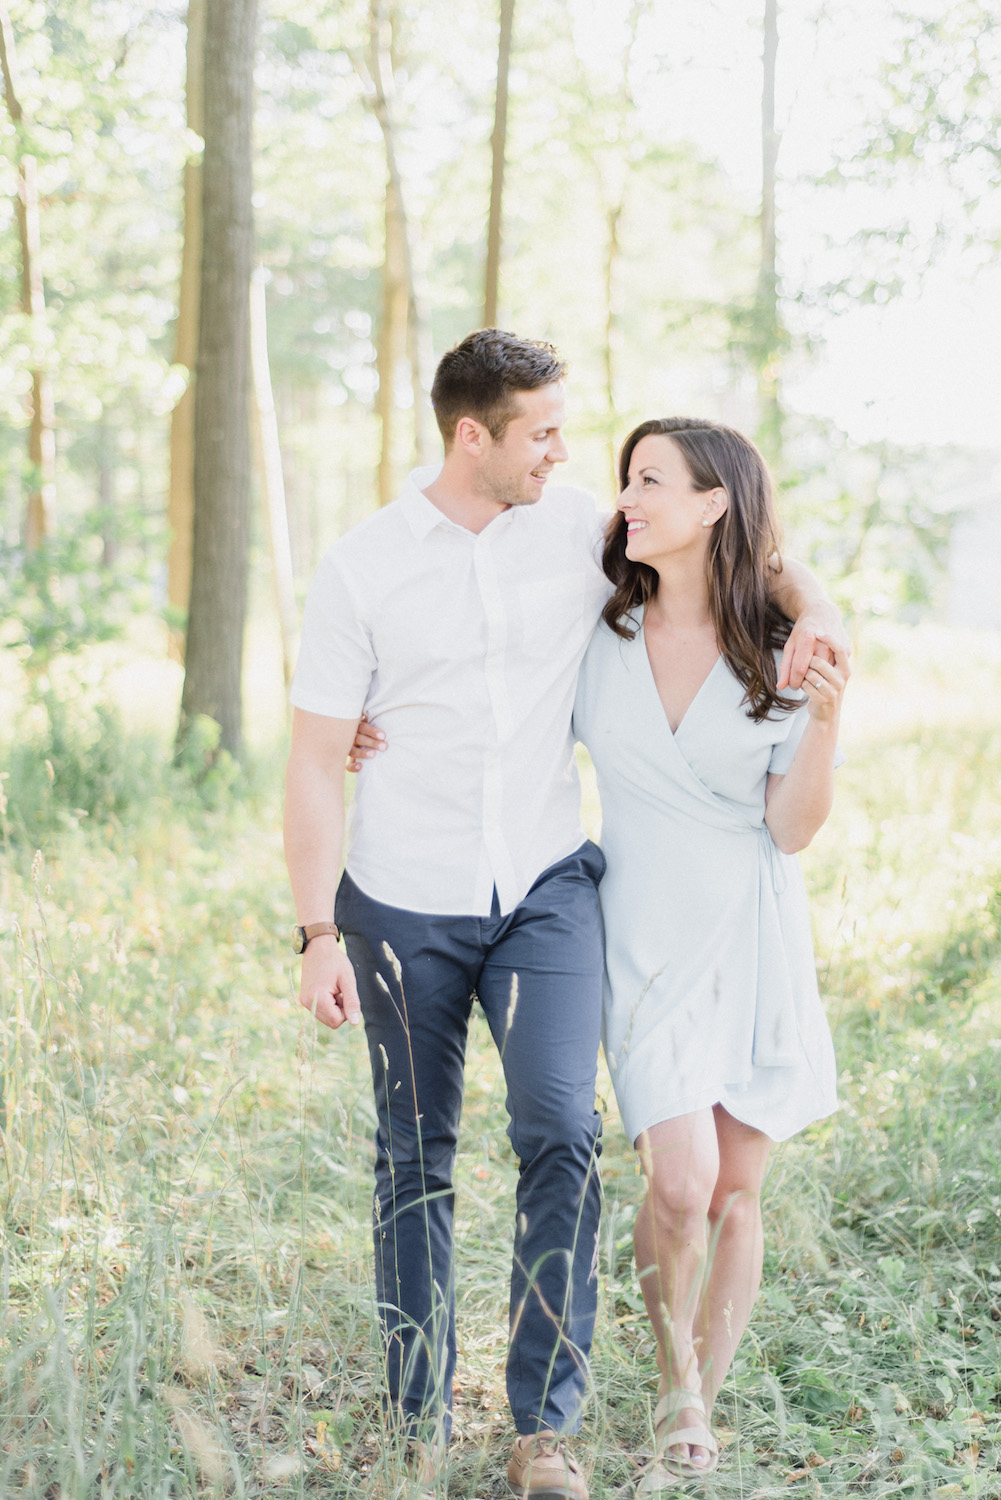 Summertime engagement session by Jenn Kavanagh Photography